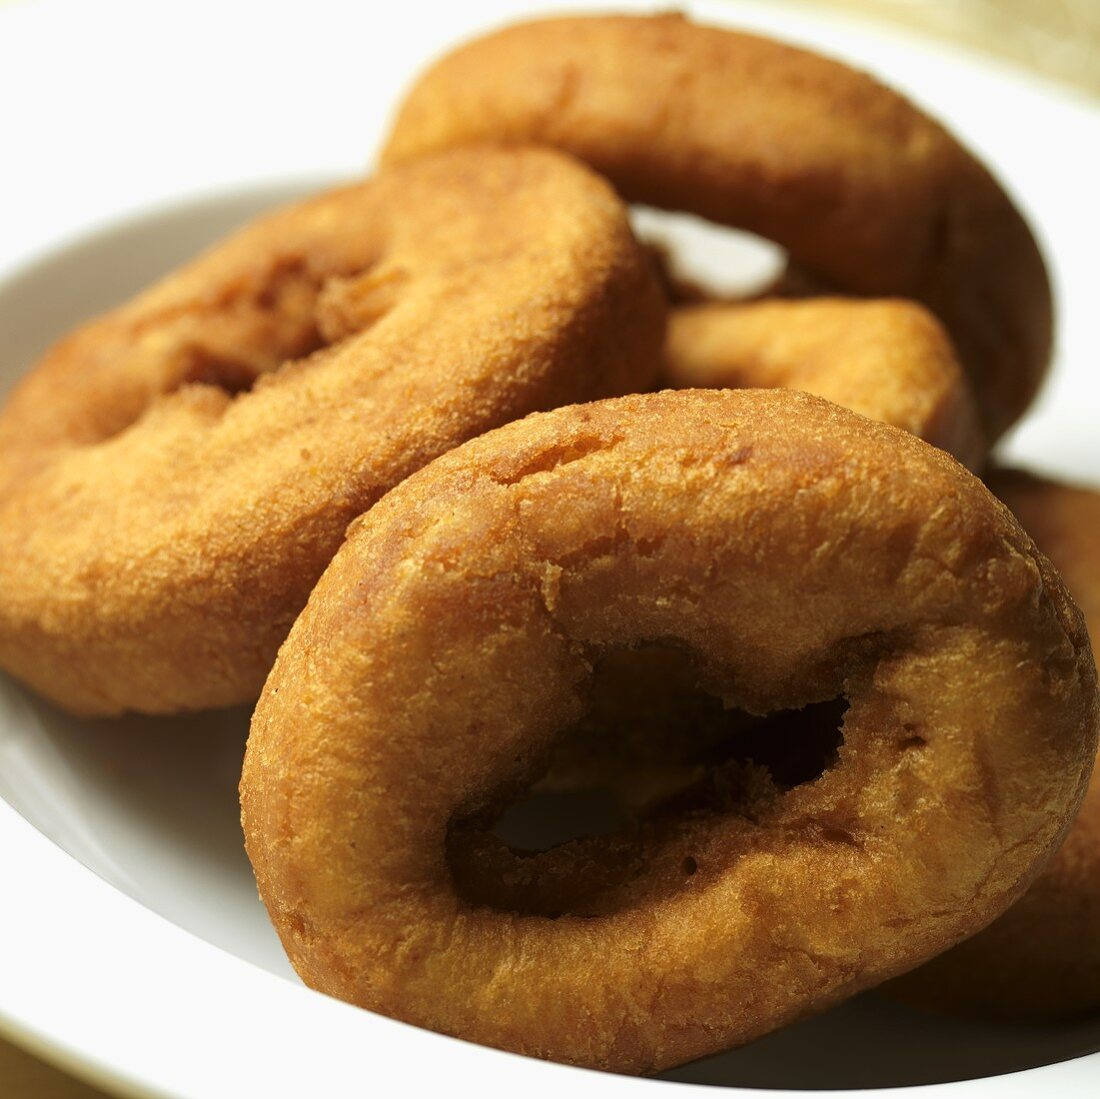 Cider Doughnuts from a Farm Market in New Jersey